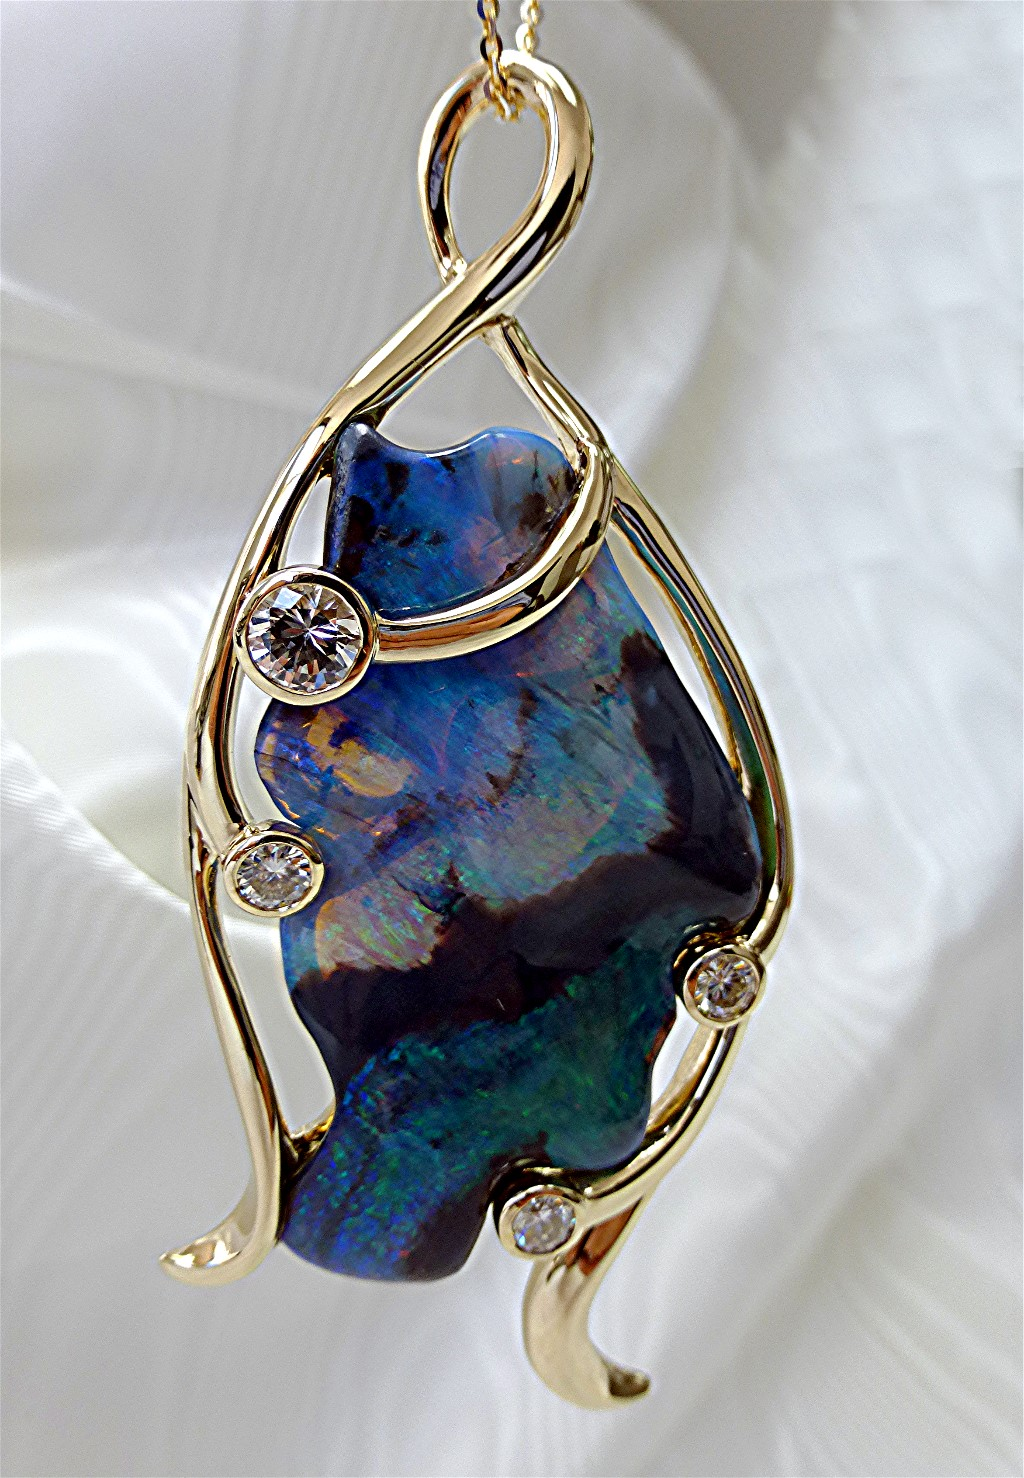 Larger free shaped opal pendant